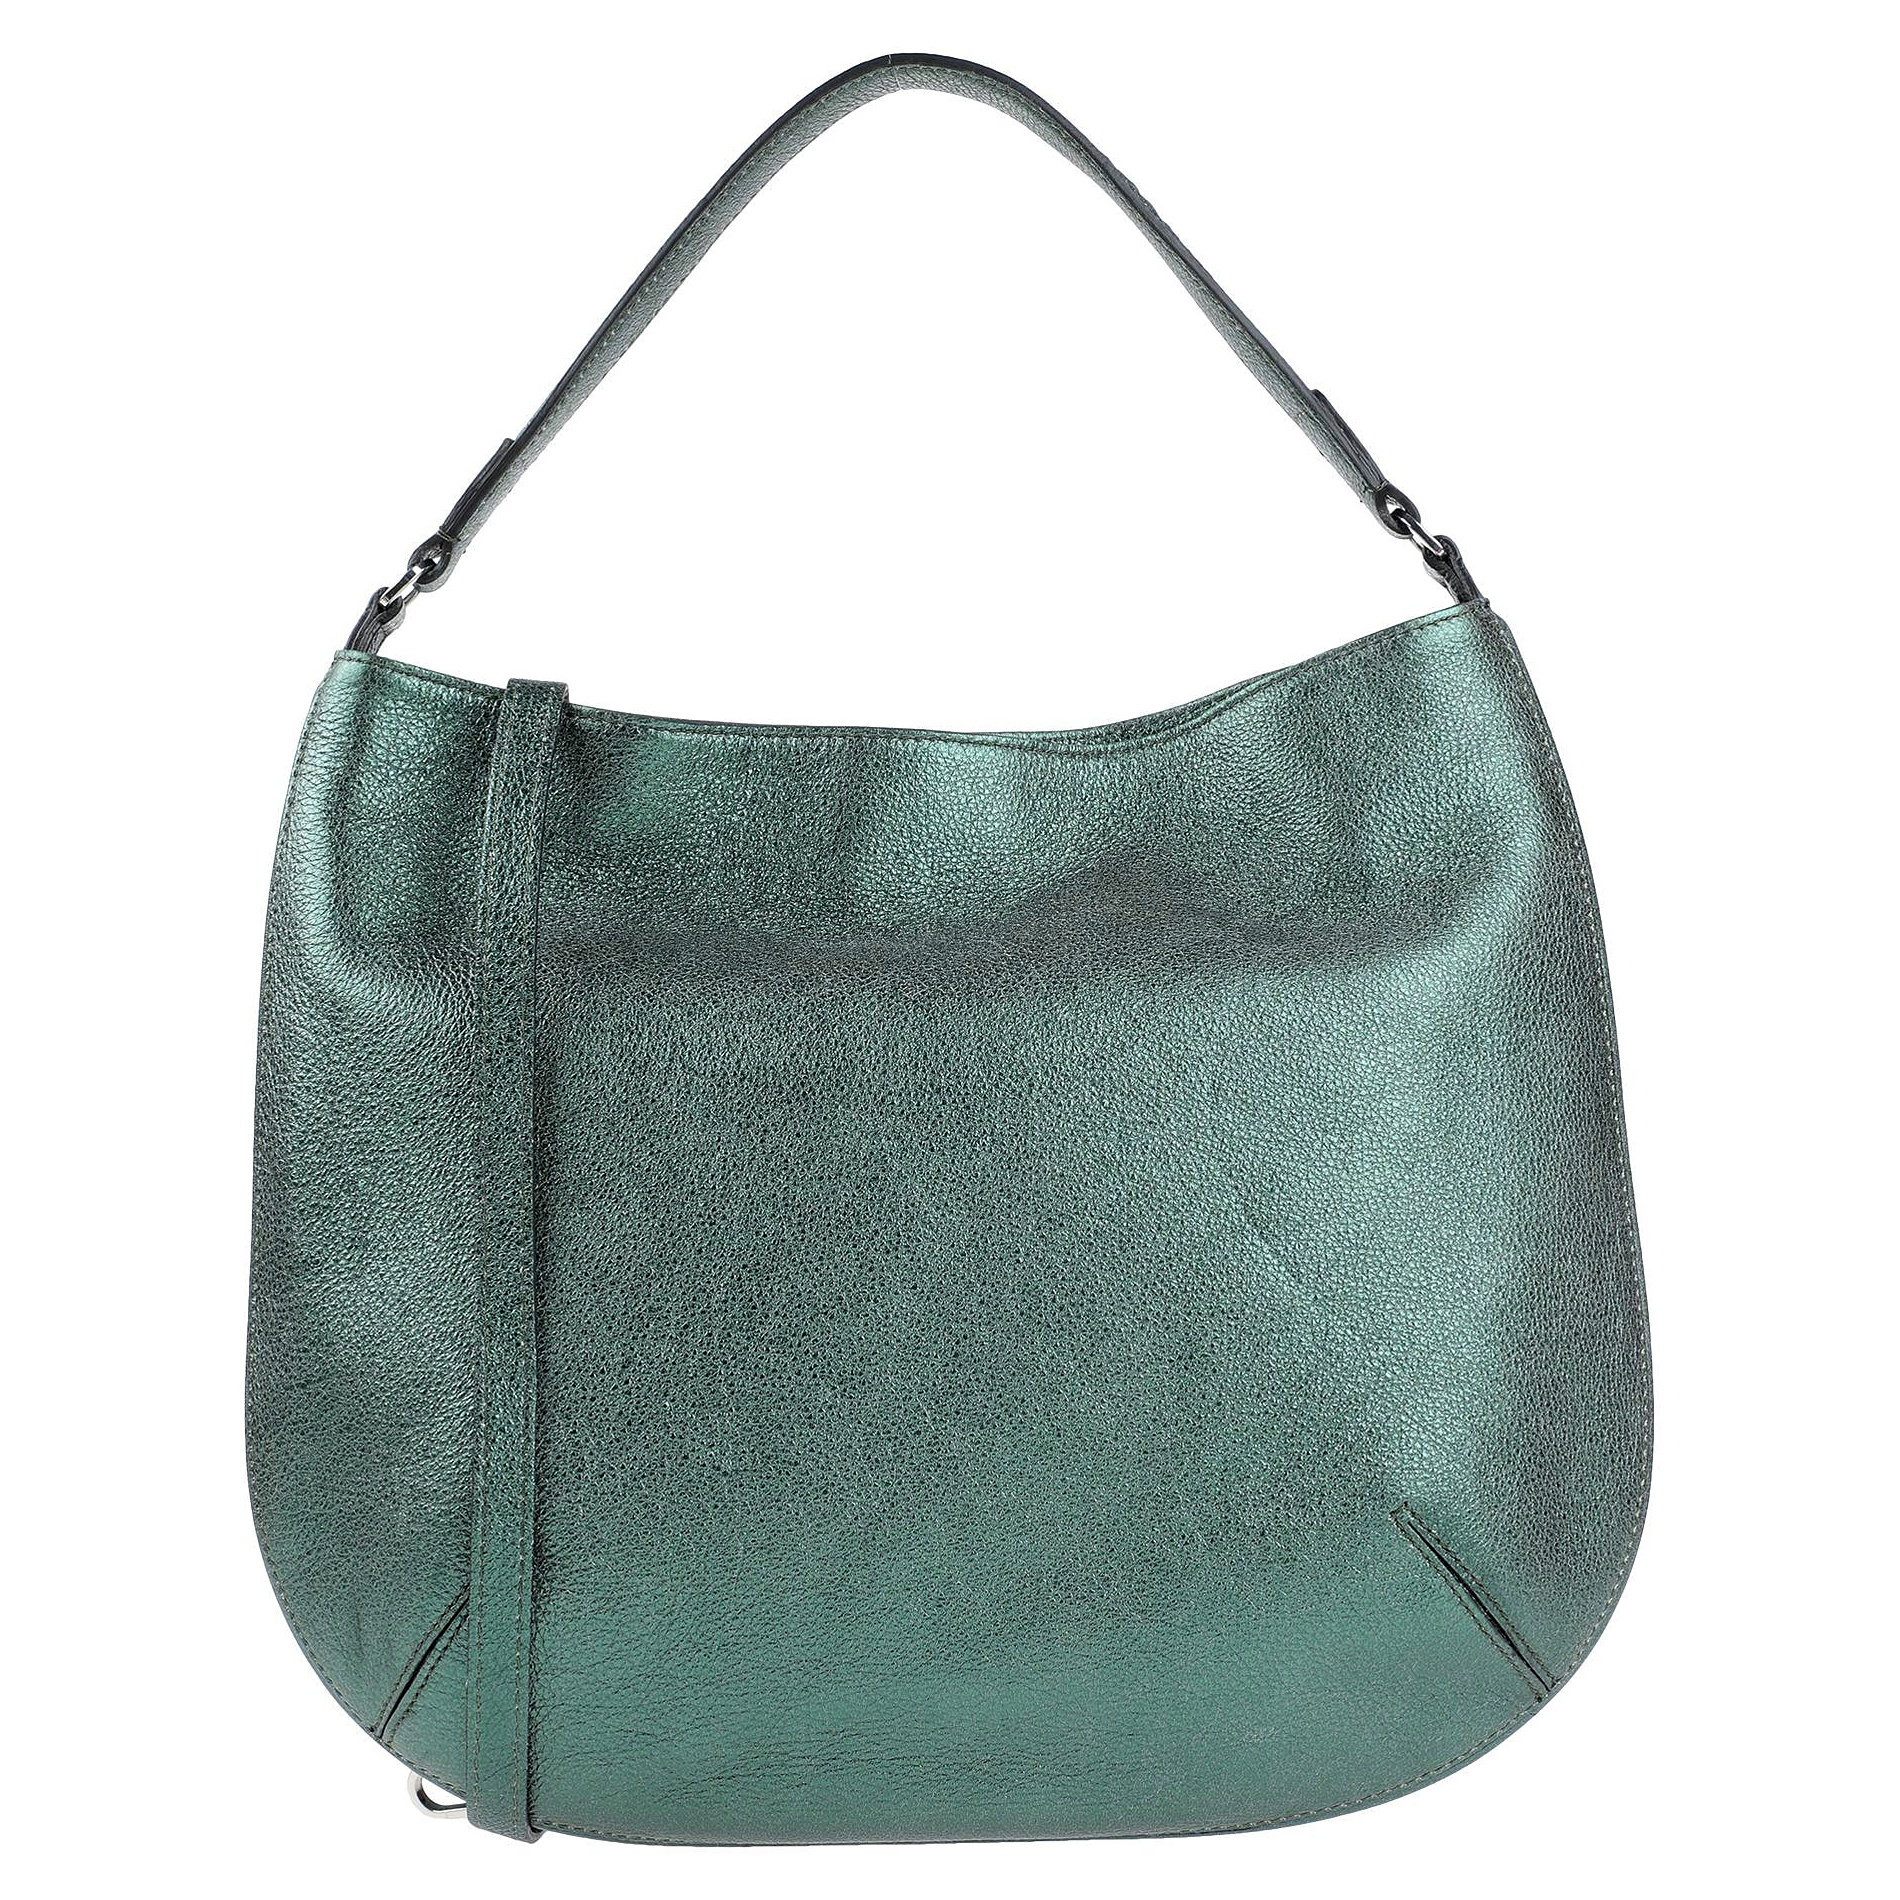 Gianni Chiarini Italian Made Metallic Green Leather Large Hobo Bag